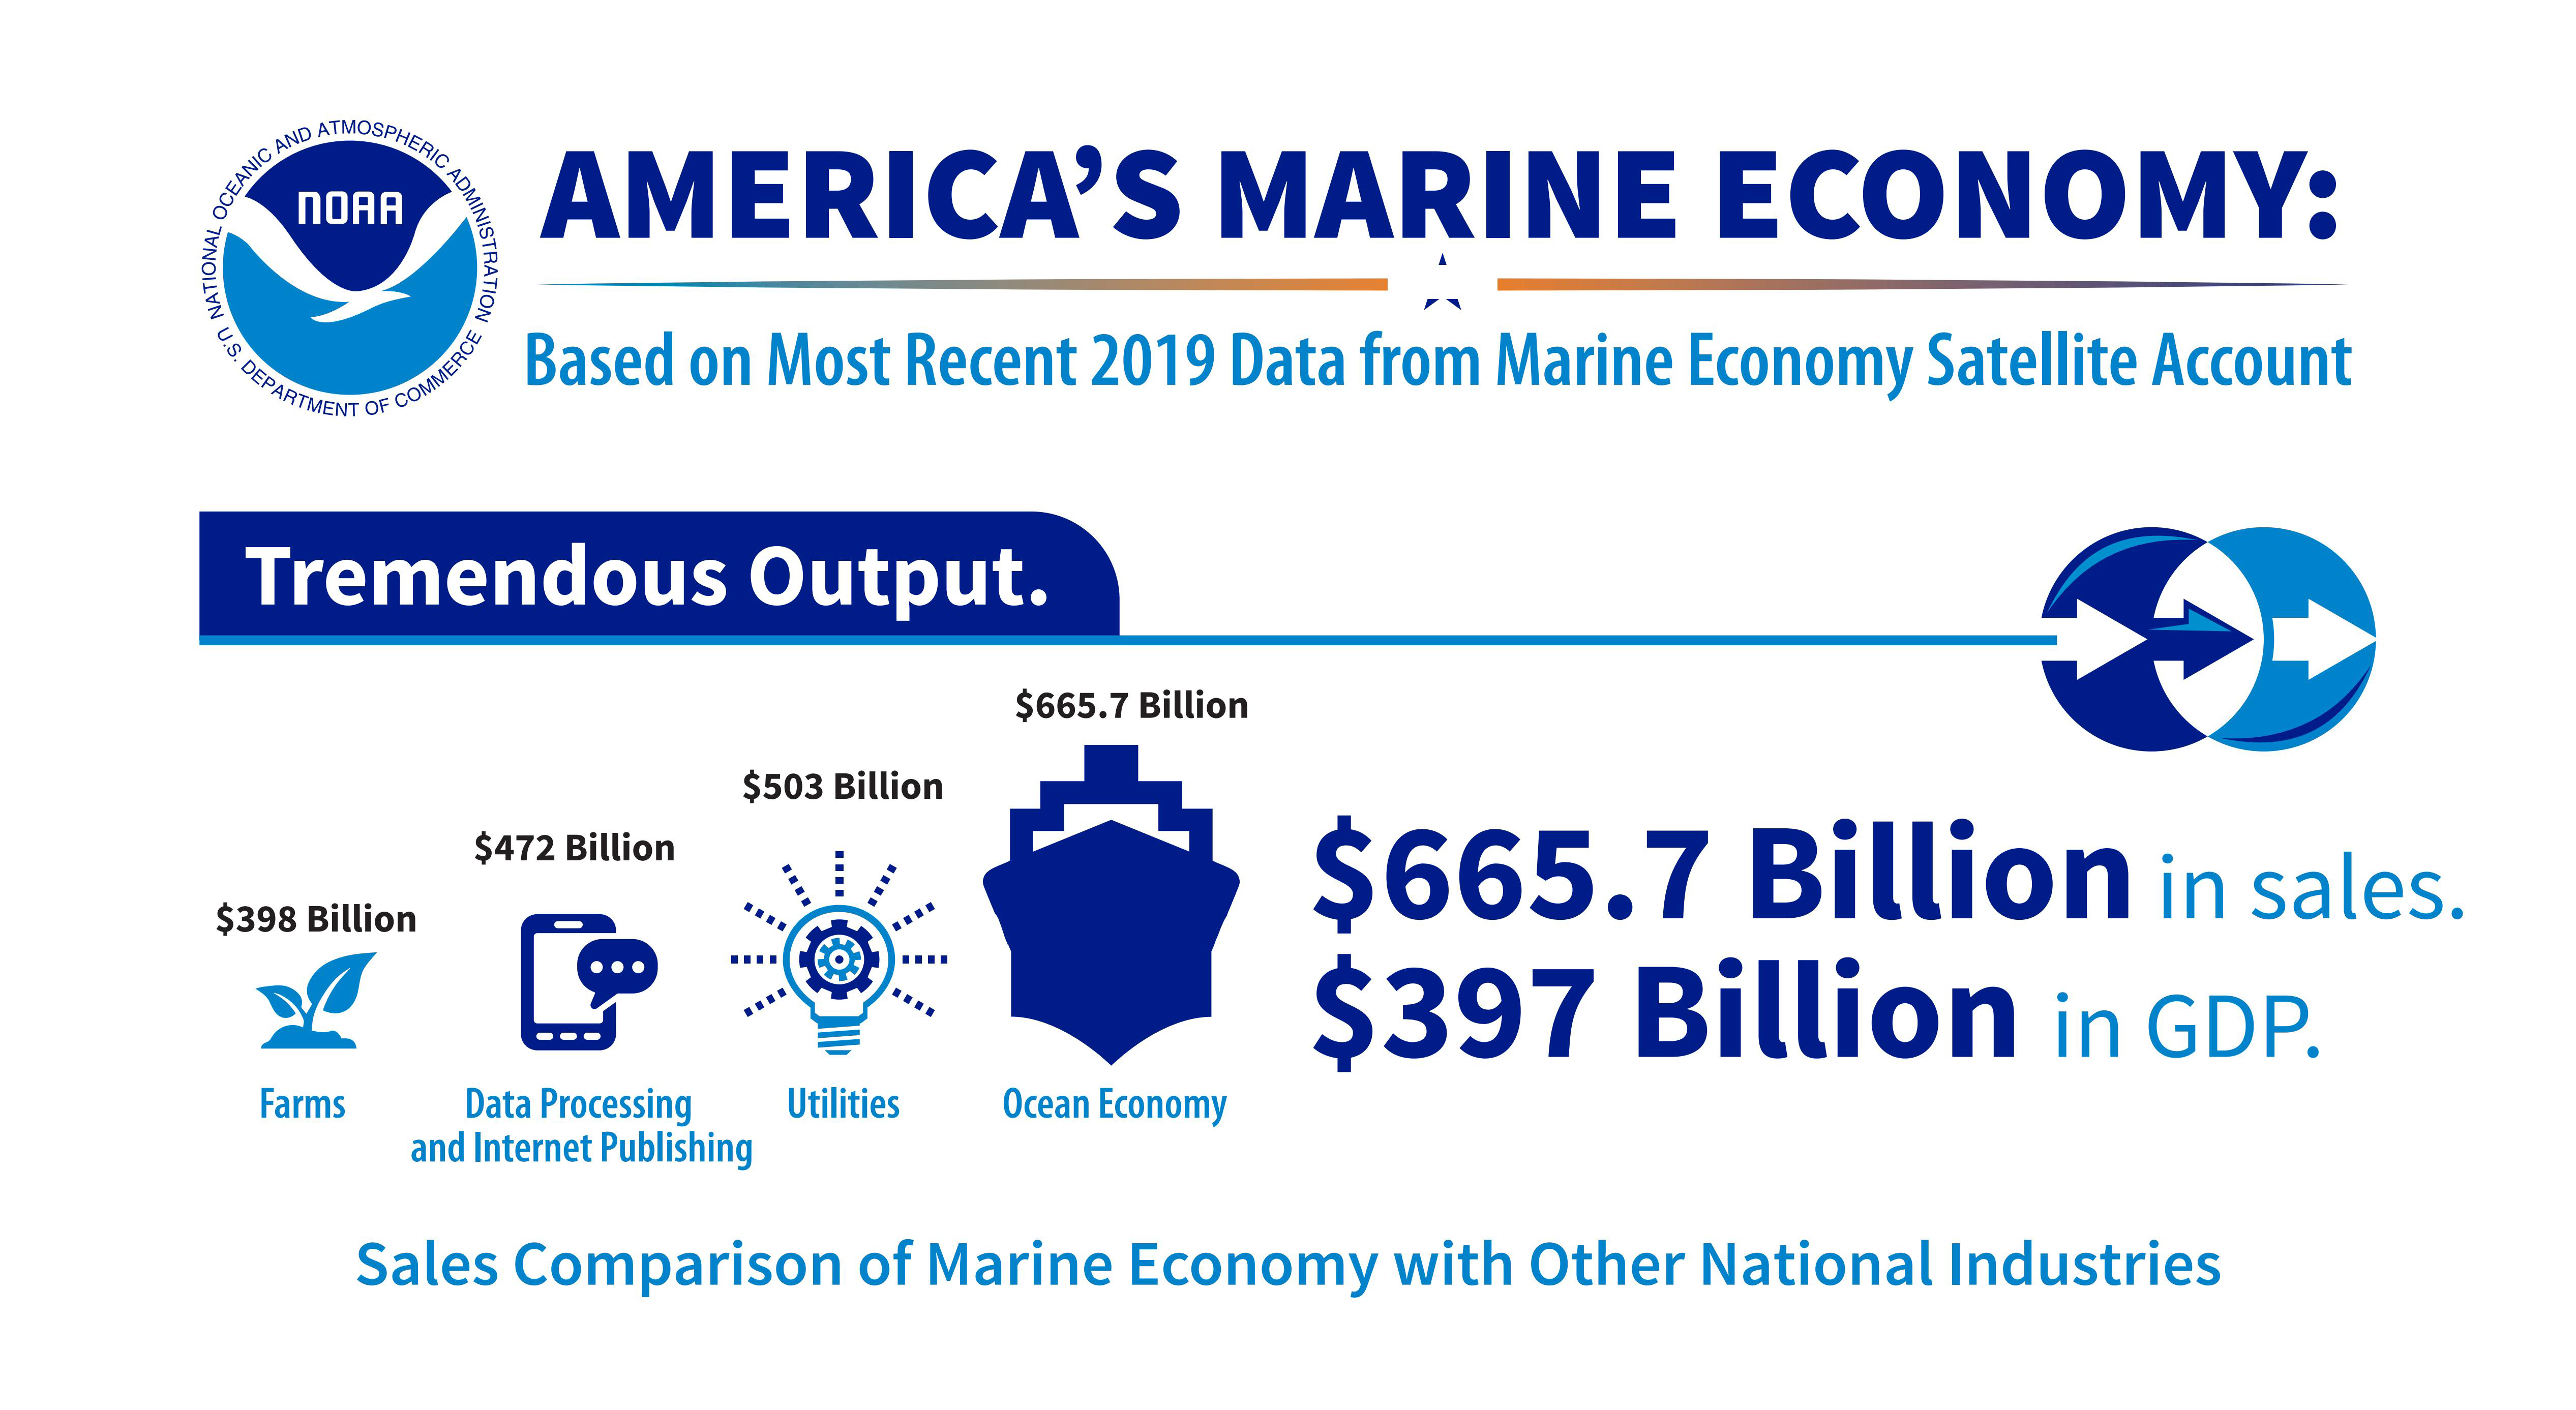 Economics graphic comparing the ocean ecomony to other sectors of industry.